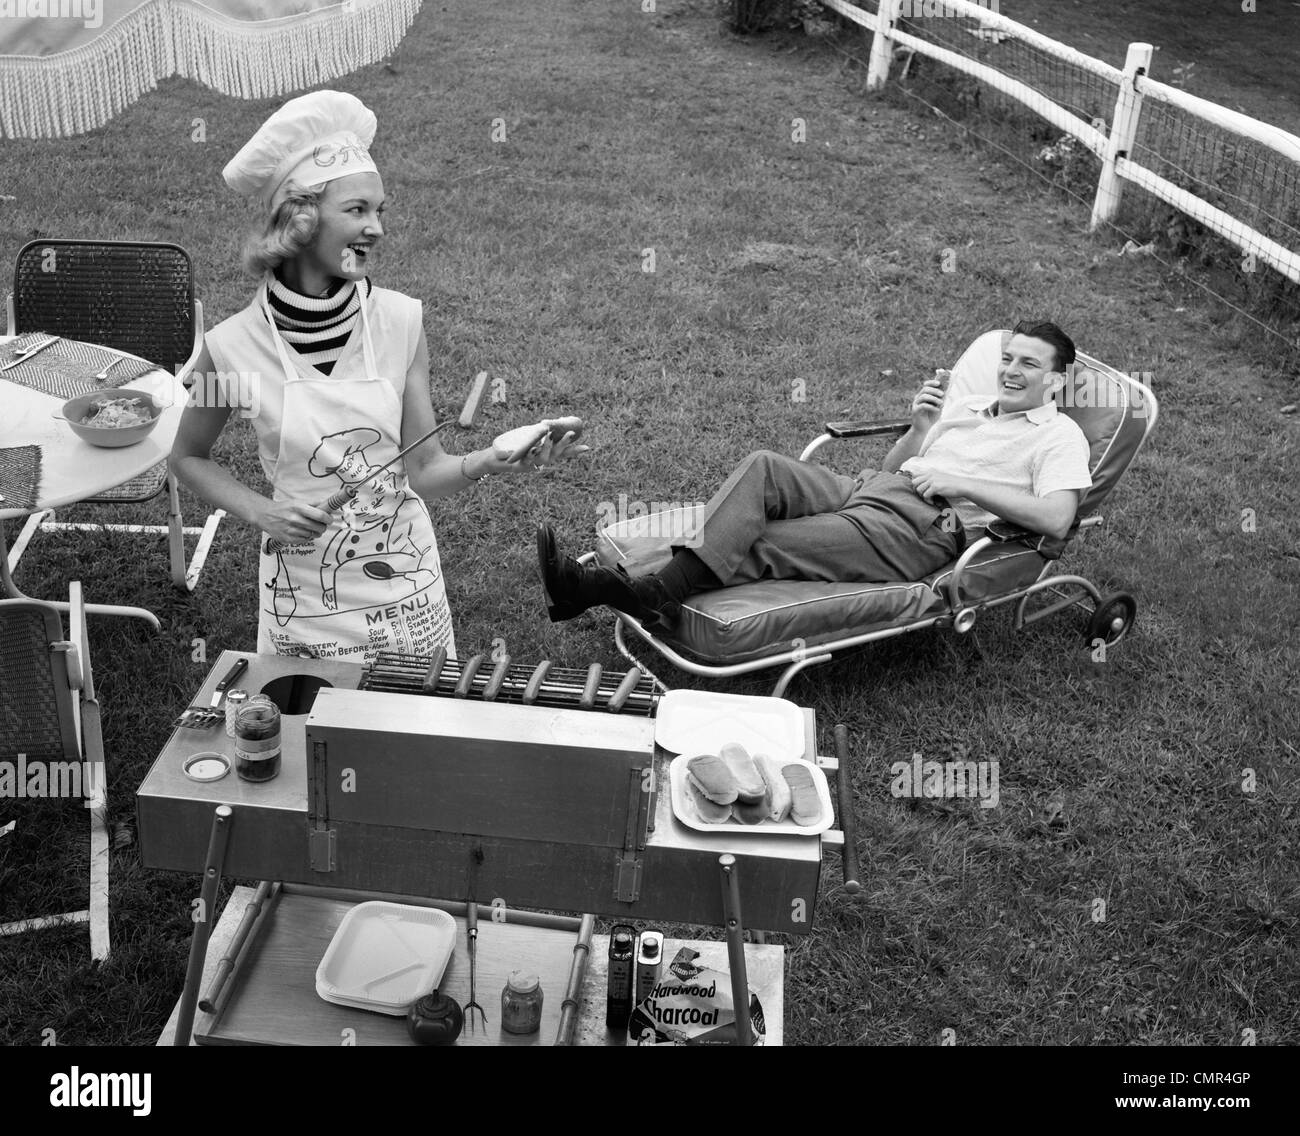 1950s 1960s WOMAN IN CHEF'S HAT AND APRON GRILLING HOT DOGS ON GRILL MAN IN CHAISE LONGUE LAUGHING EATING A FRANKFURTER Stock Photo